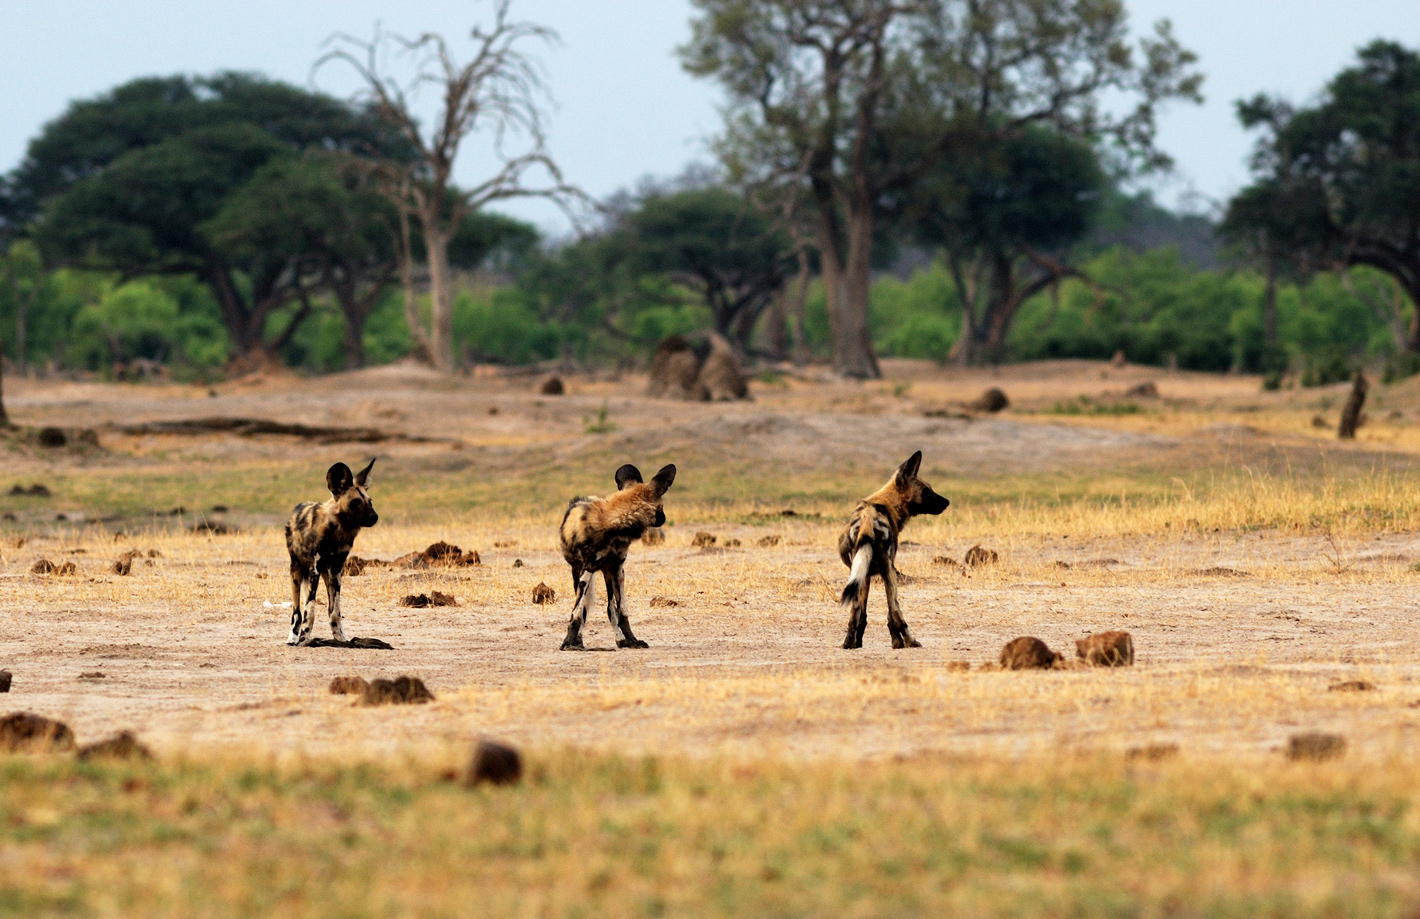 Three-wild-dogs-in-an-African-field